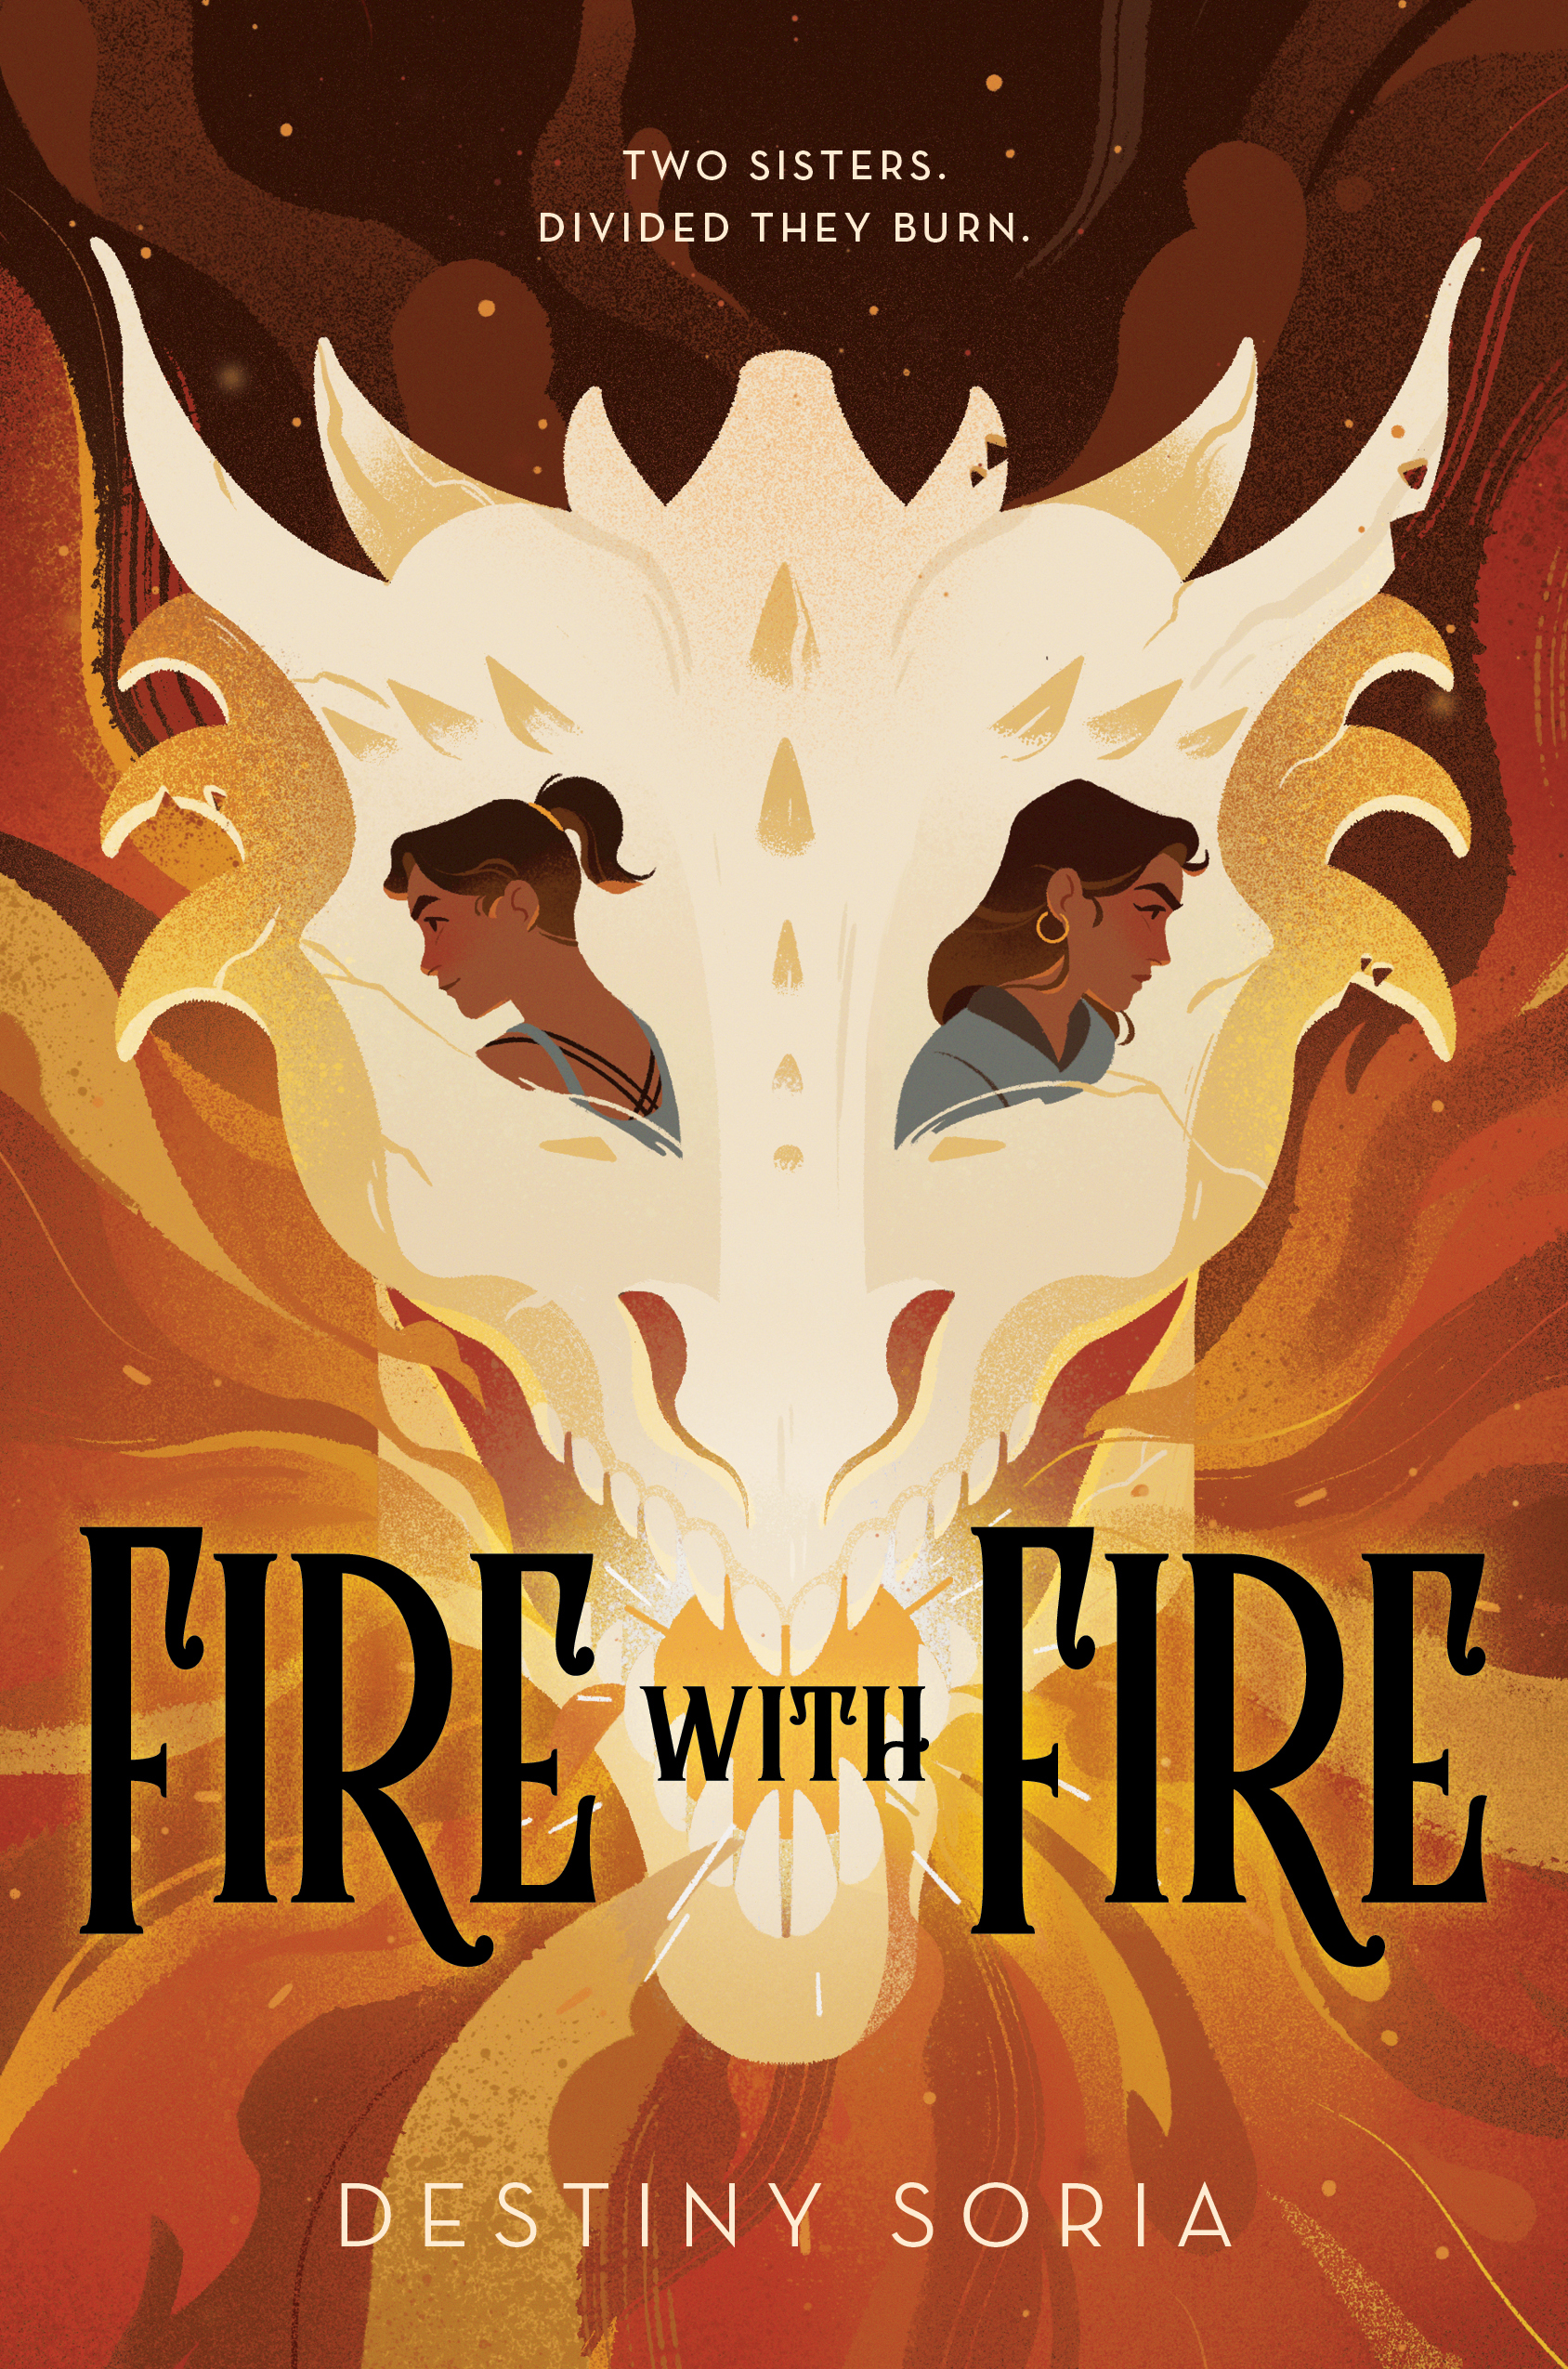 The cover of Fire with Fire by Destiny Soria